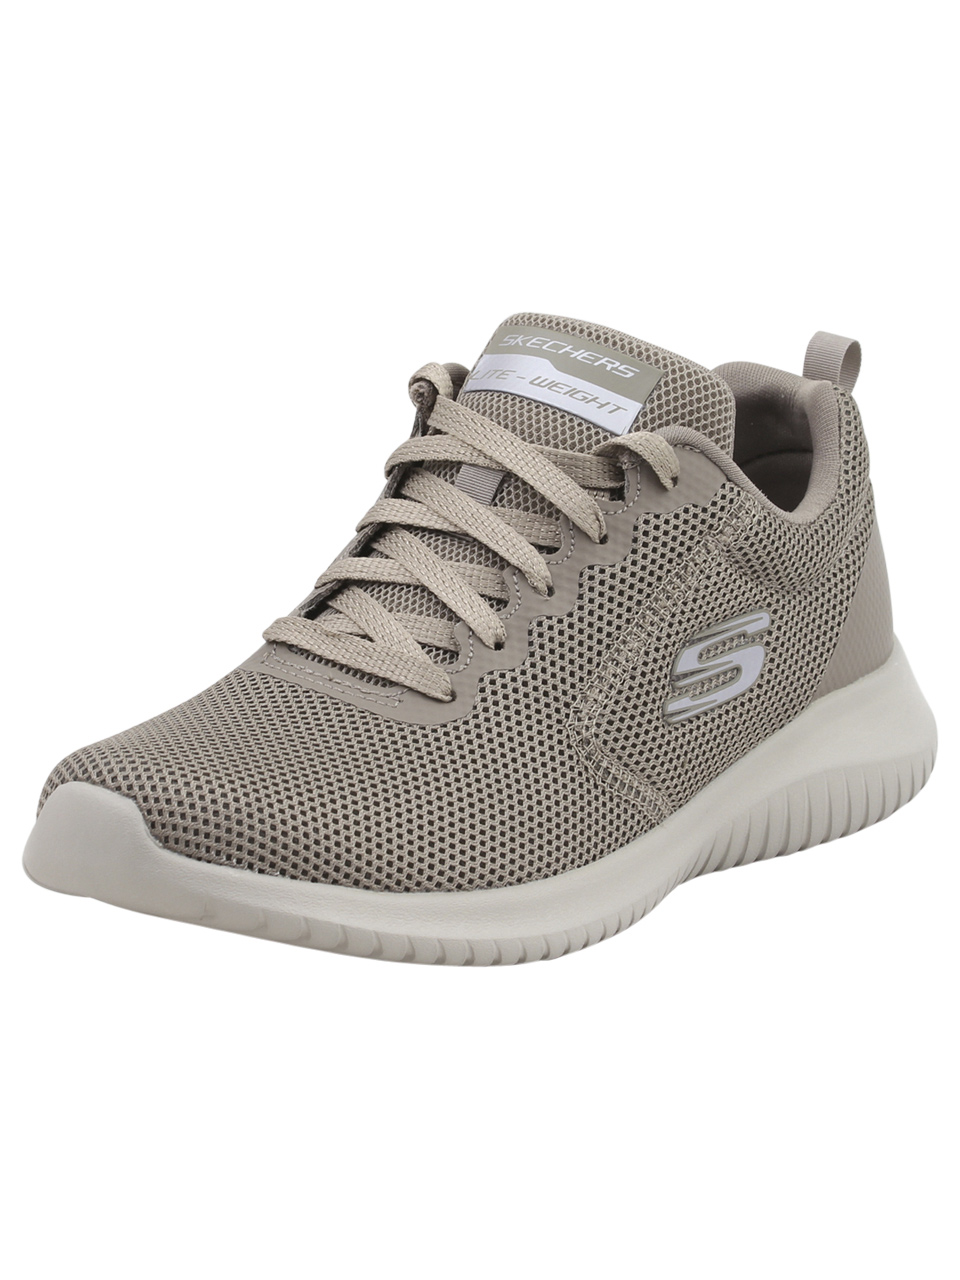 Details about Skechers Ultra Flex Free Spirits Dark Taupe Memory Foam Sneakers Shoes